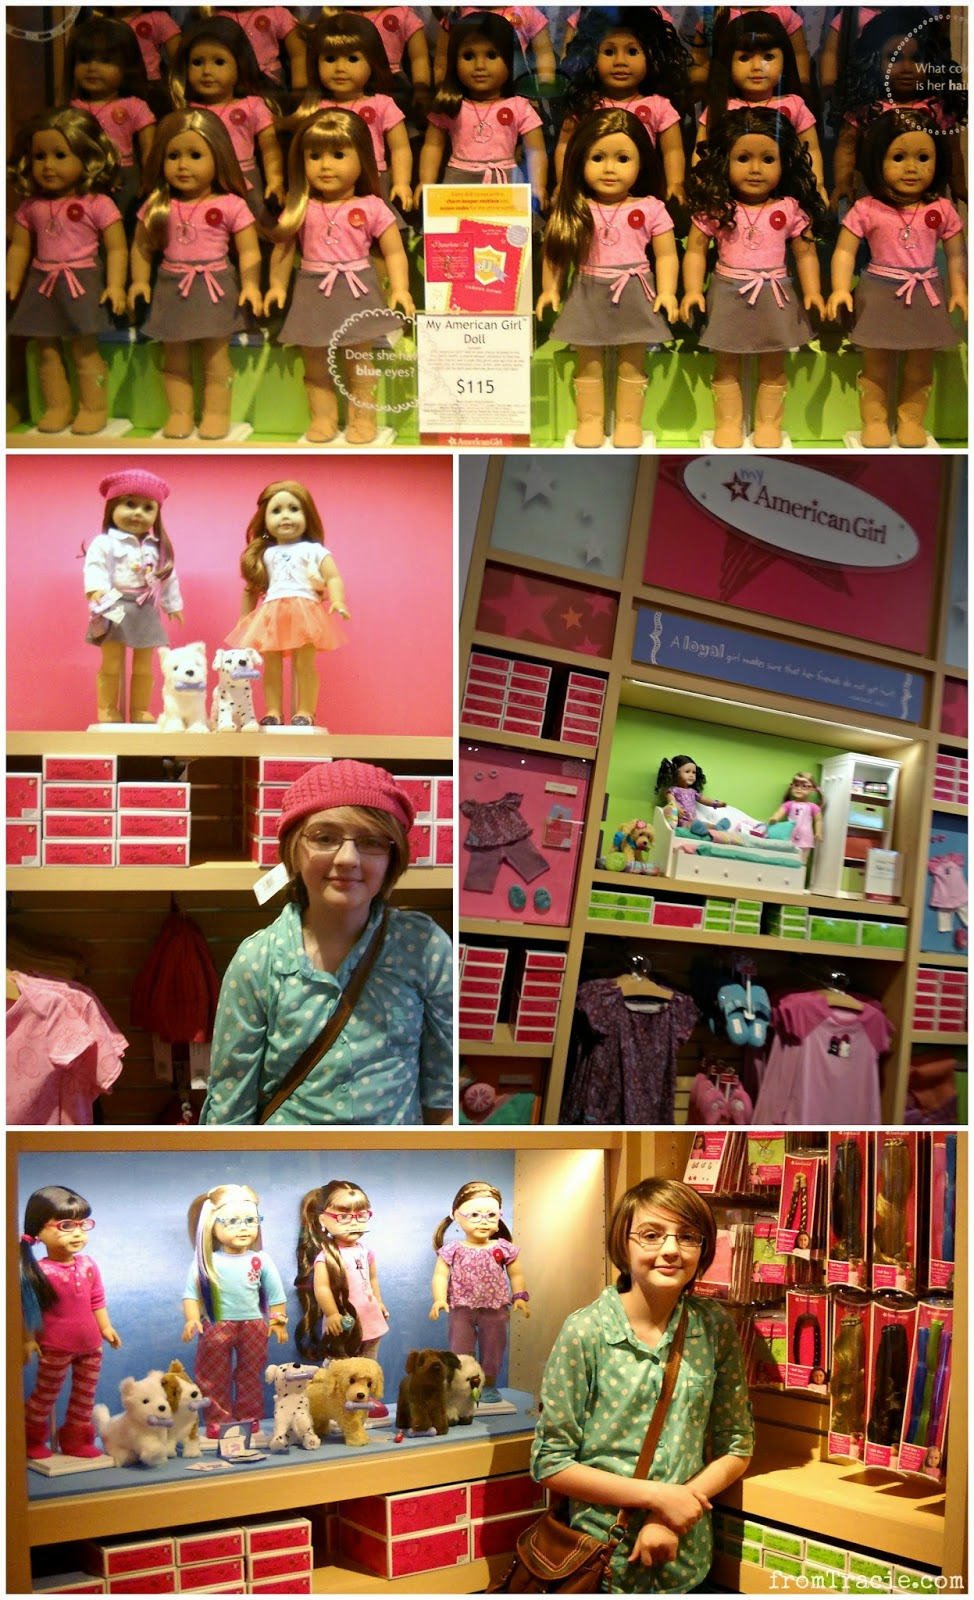 My American Girl look like you dolls, matching doll/girl outfits, and accessories